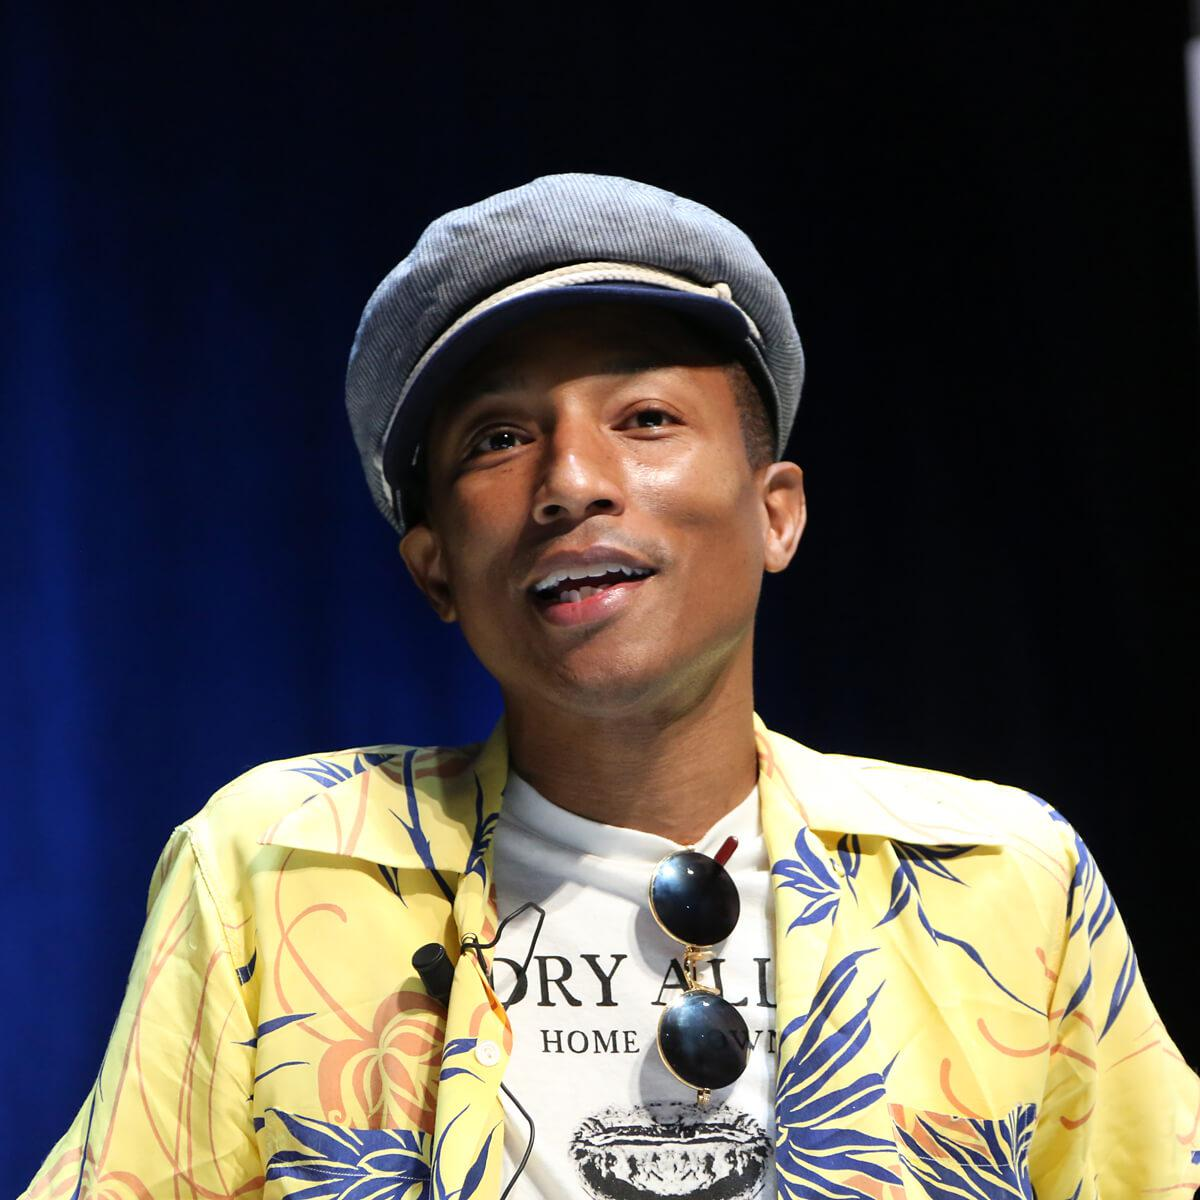 Photograph of musician Pharrell Williams taken by Julian Hanford at Cannes Lions 2017